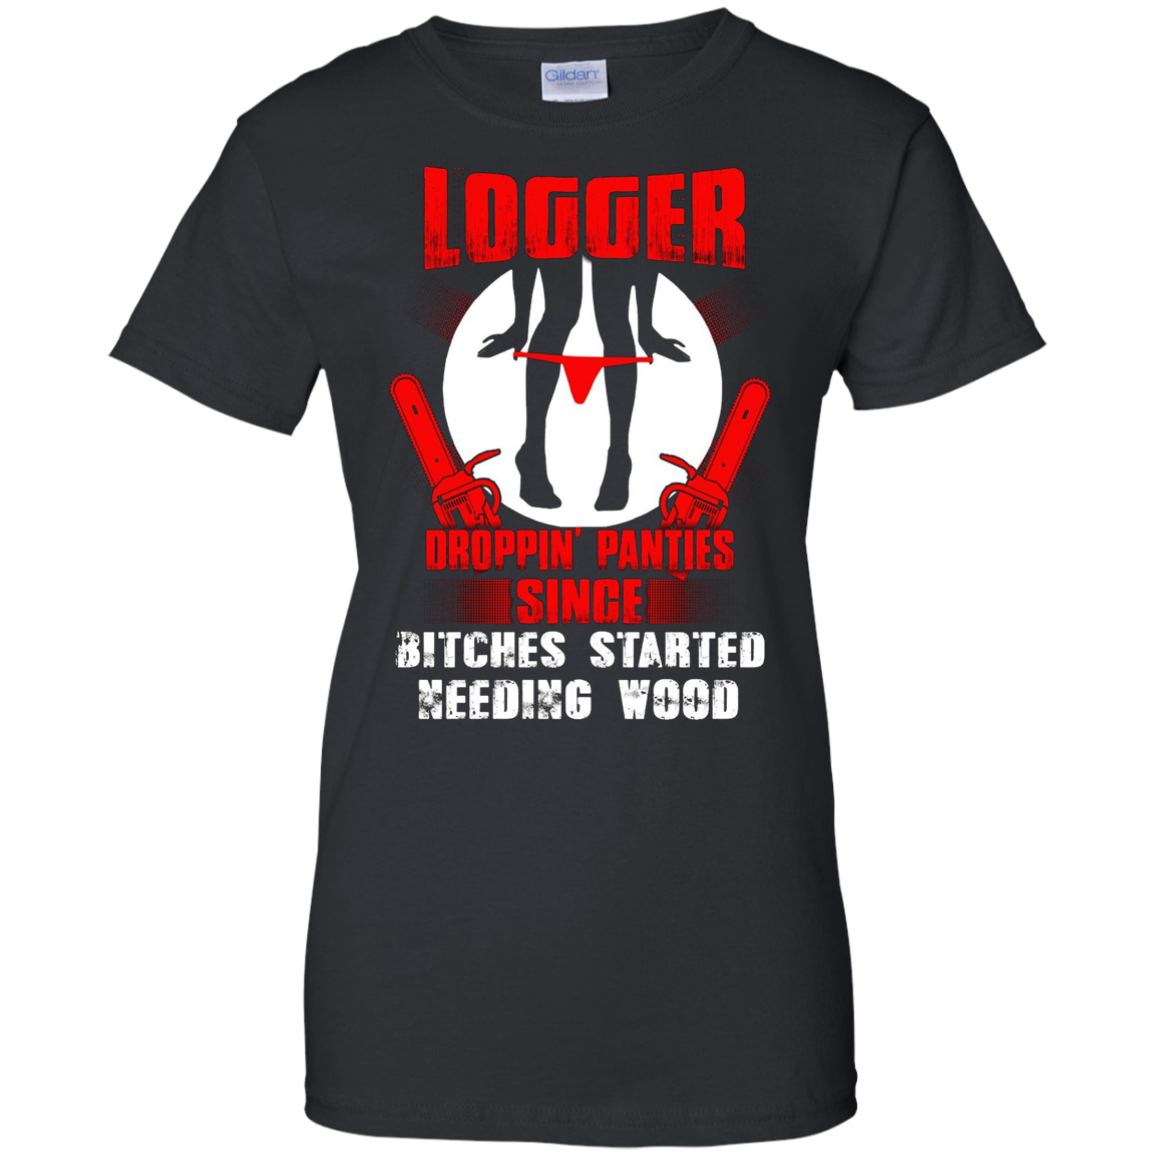 Awesome funny t-shirt logger dropping panties great gift.